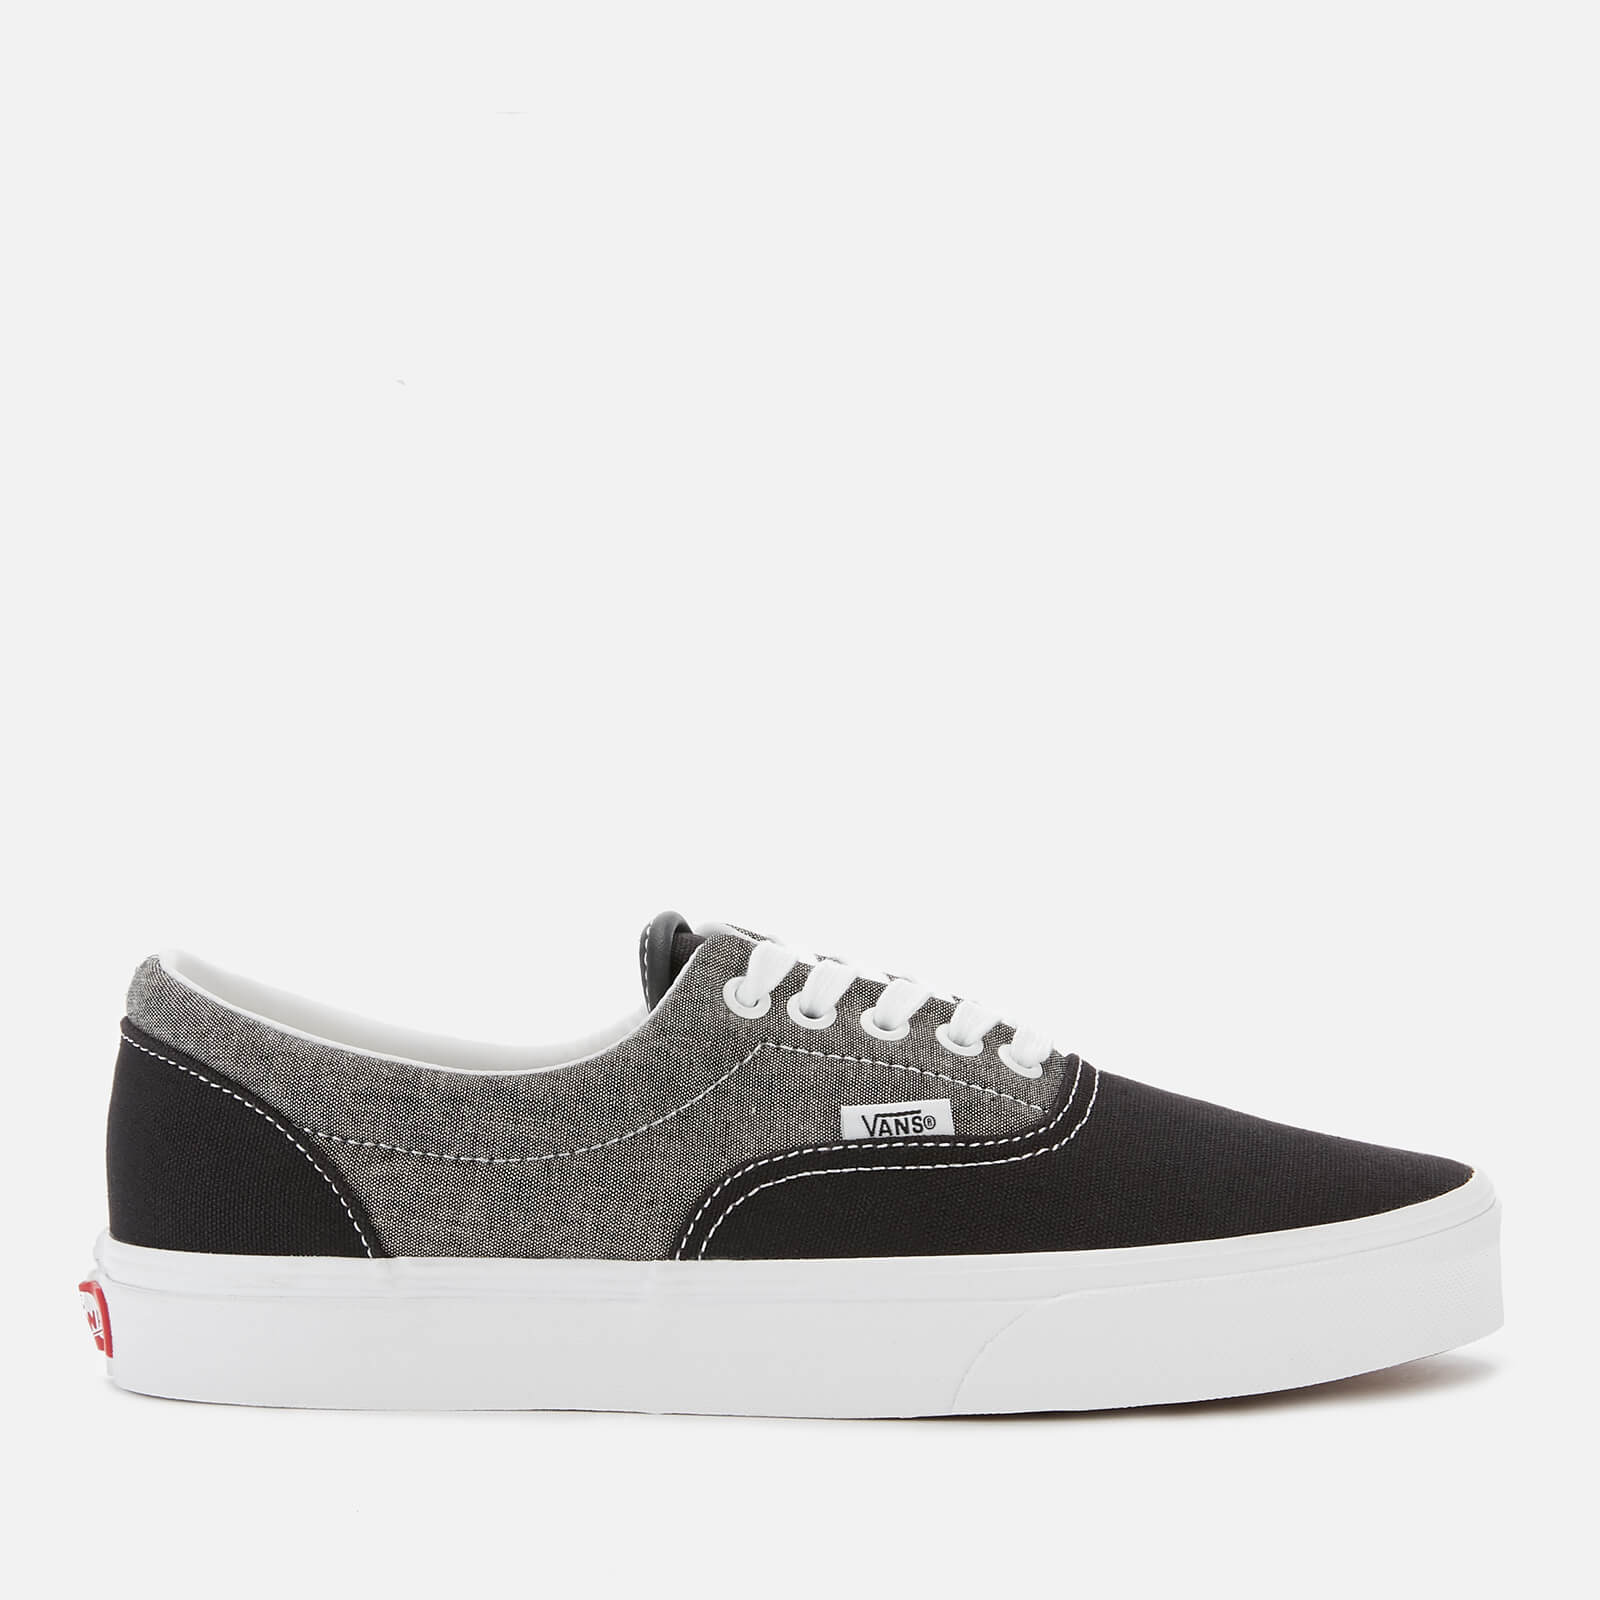 7b040e21 Vans Men's Chambray Era Trainers - Canvas Black/True White